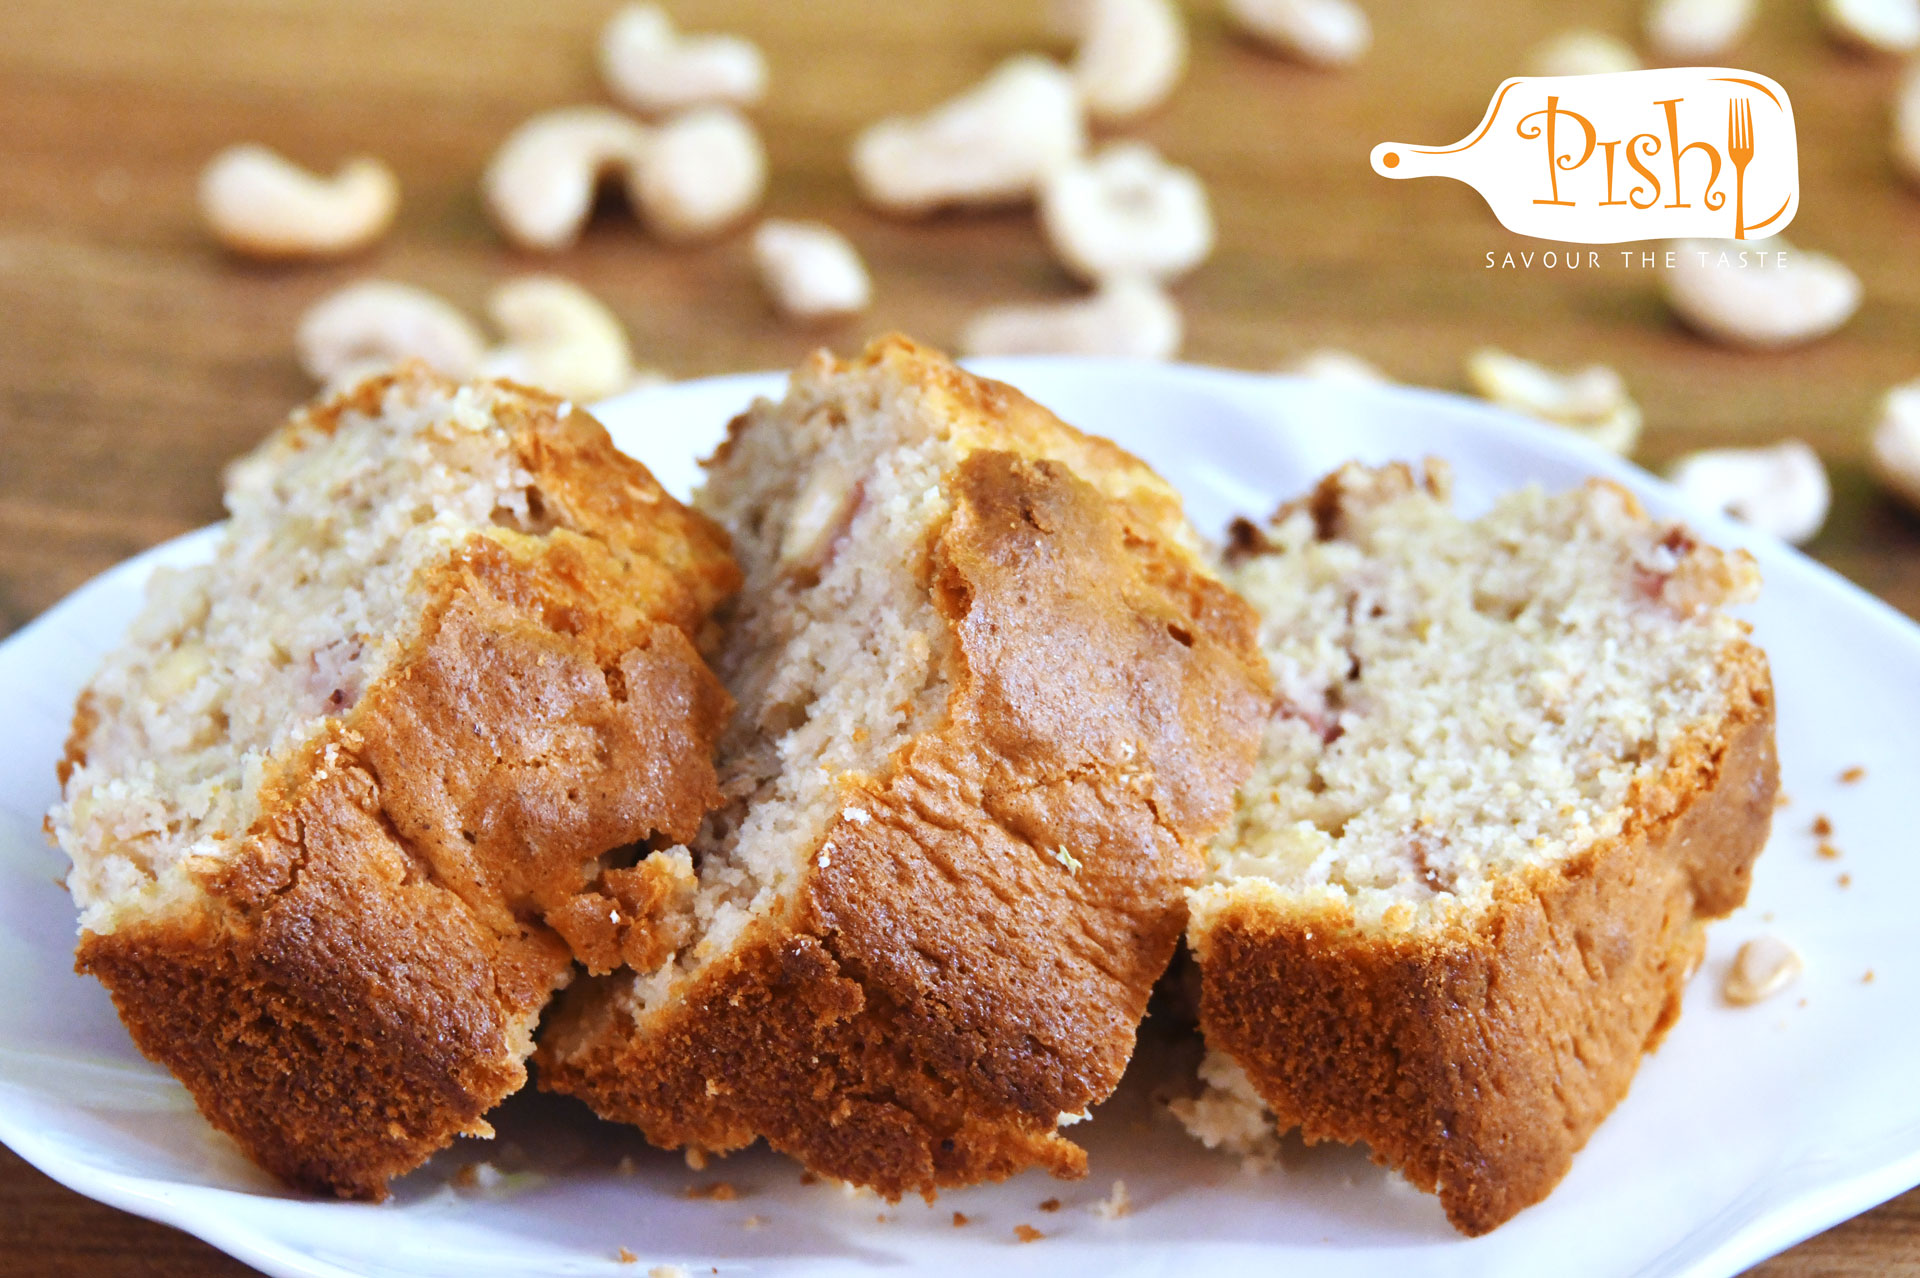 Lemon, Cashew nuts and Strawberry Loaf